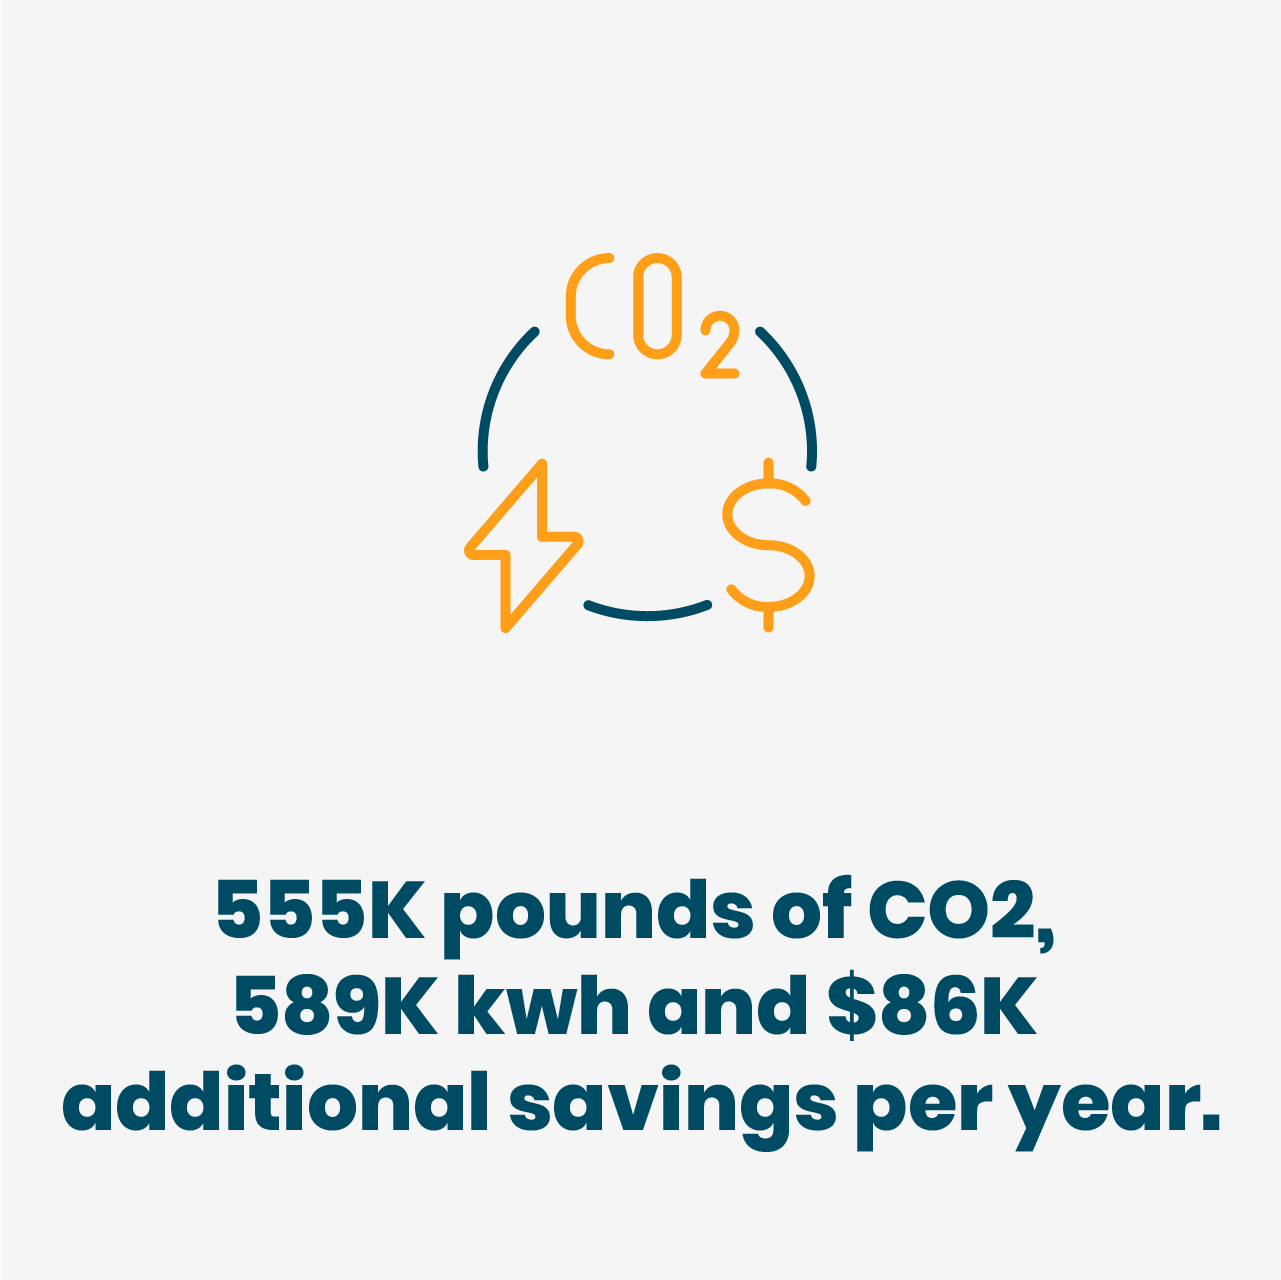 555K pounds of CO2, 589K kwh and $86K additional savings per year.